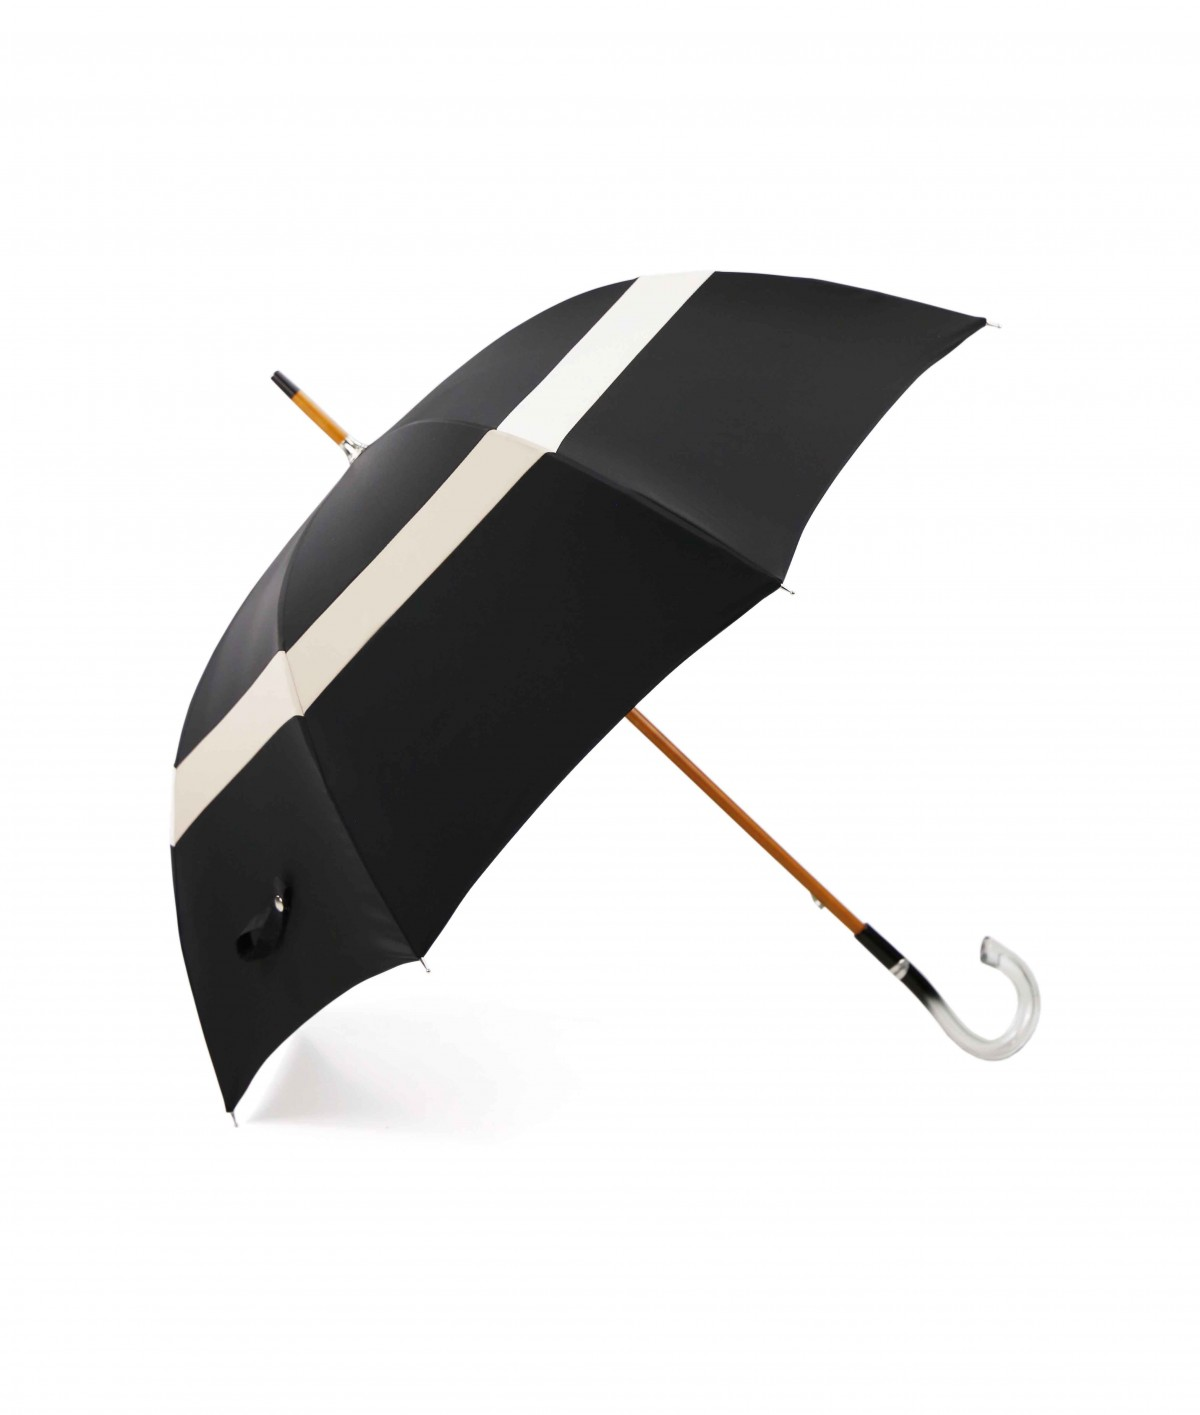 → Black Umbrella with its Two-Tone Band - White / Beige - Made in Fran ce by Maison Pierre Vaux Umbrella manufacturer